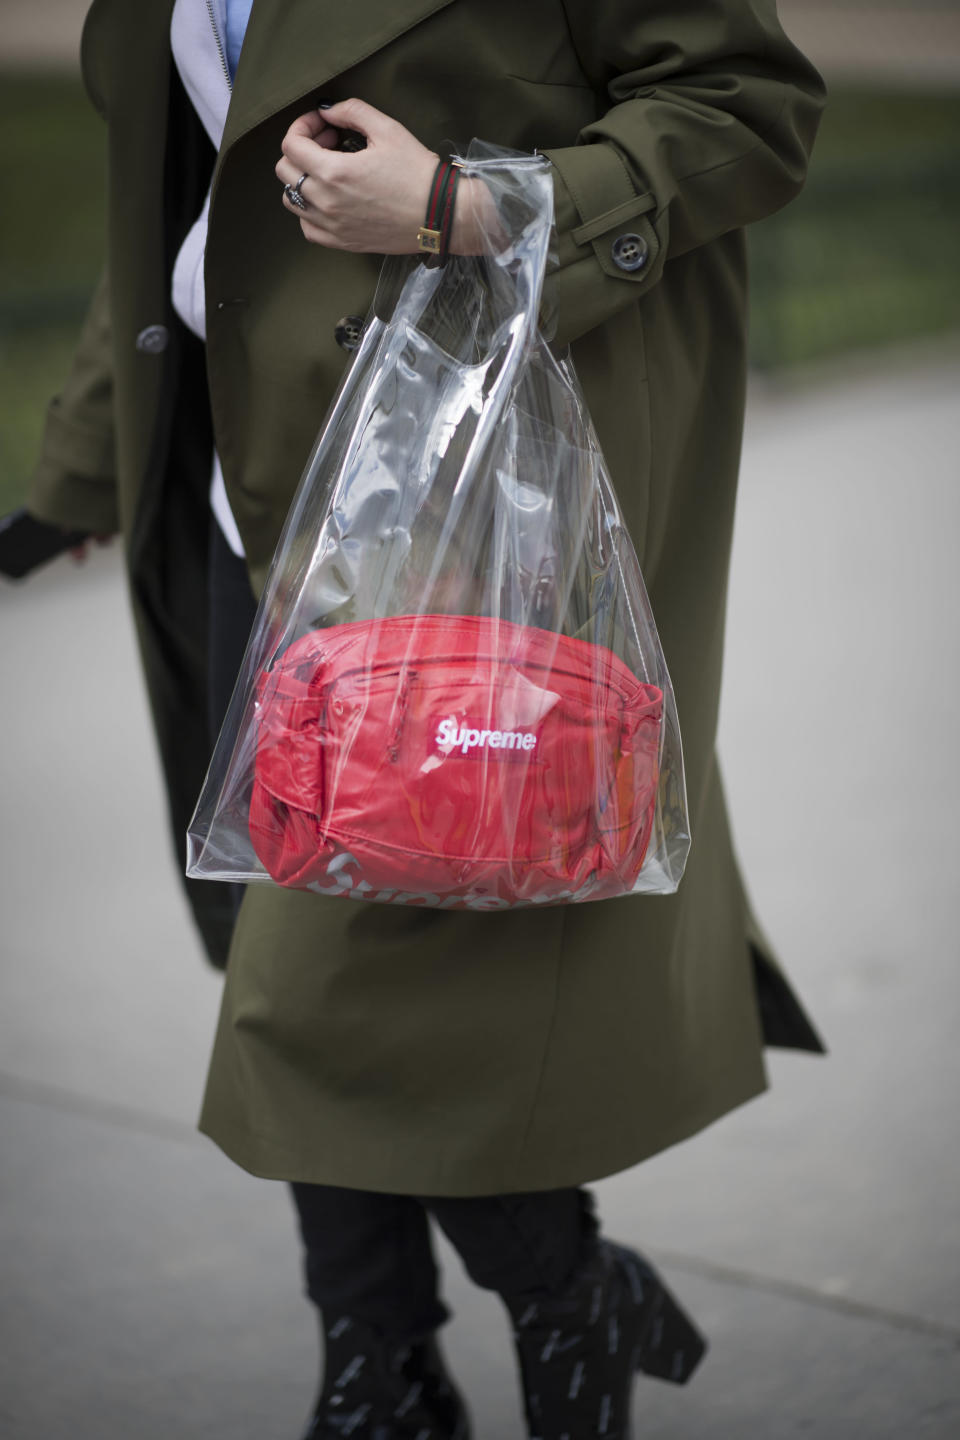 <p>Model carries red Supreme bag inside clear plastic tote. (Photo: Getty Images) </p>